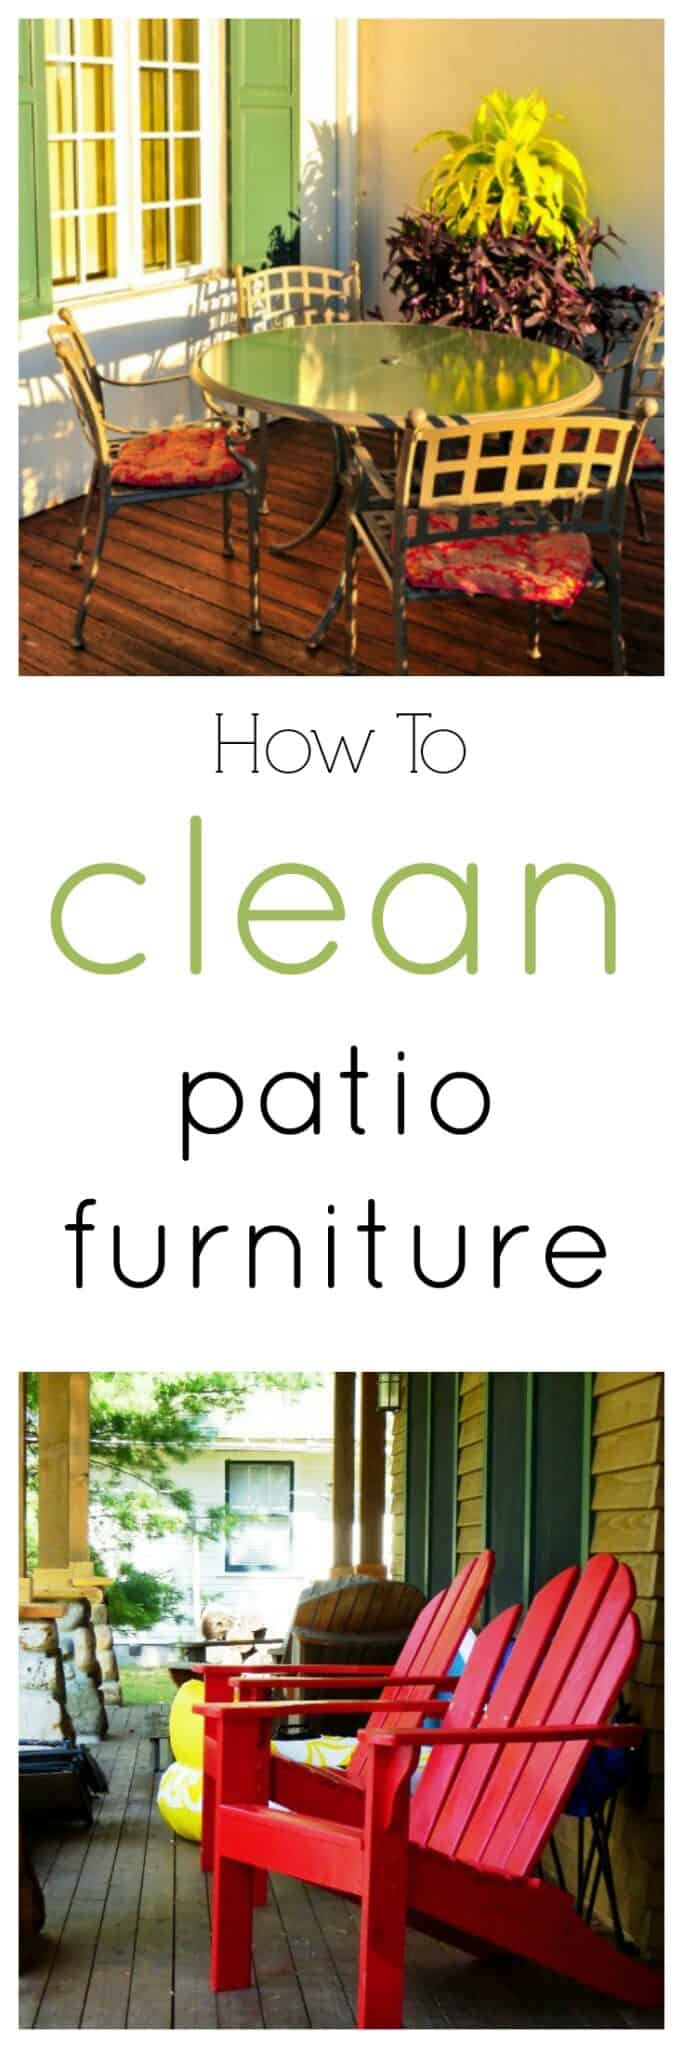 How To Clean Patio Furniture Of All Kinds Wood Wicker Metal And More